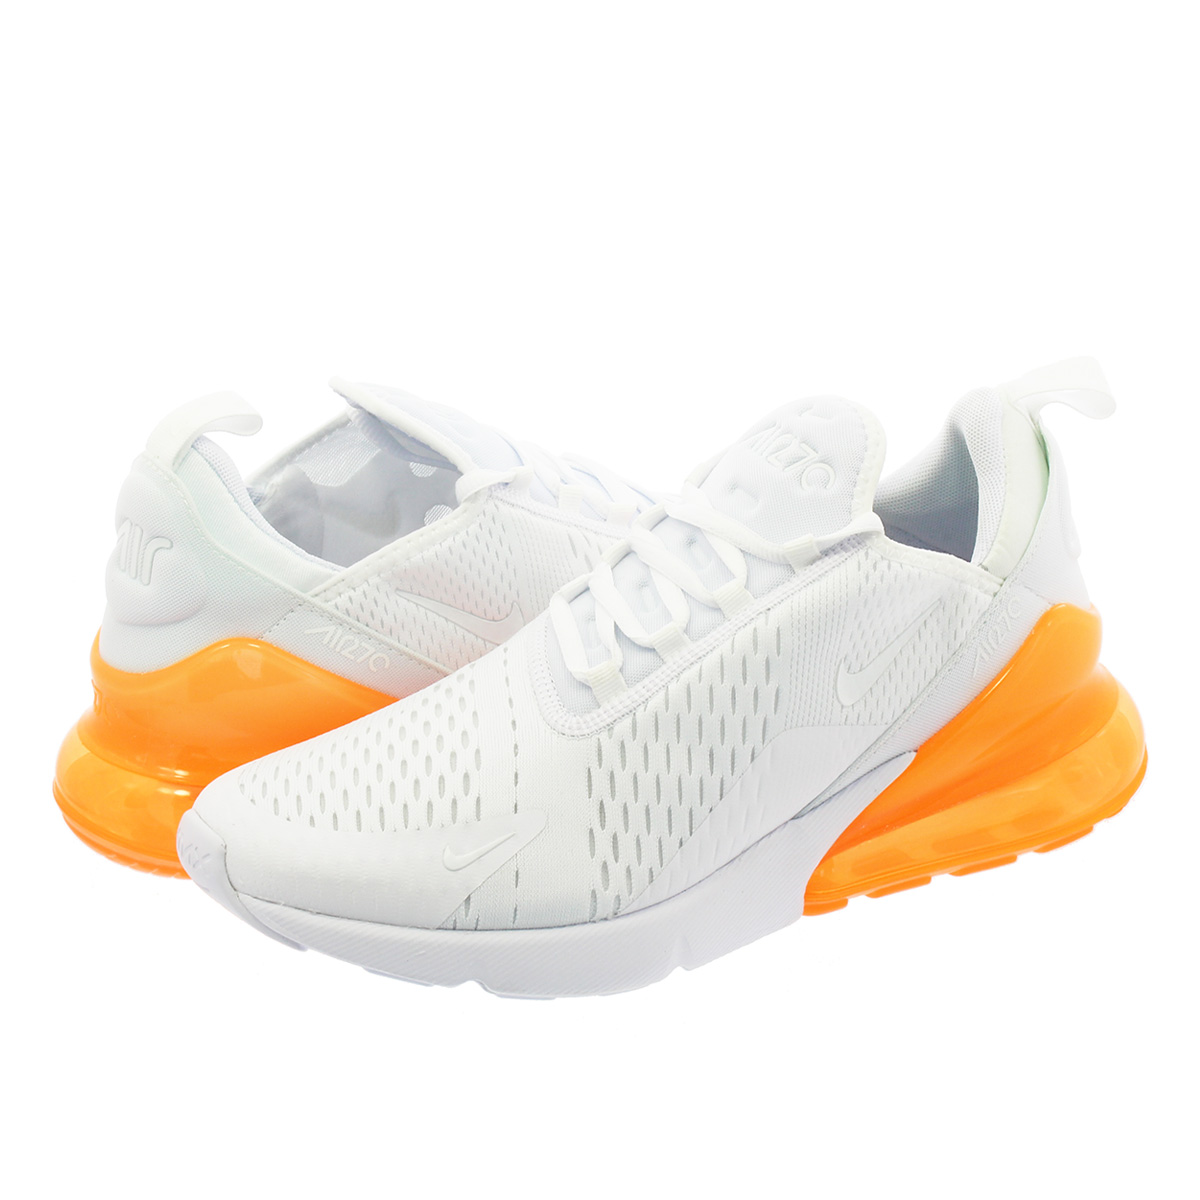 quality design 2134e 01ed0 NIKE AIR MAX 270 Kie Ney AMAX 270 WHITE TOTAL ORANGE ah8050-102